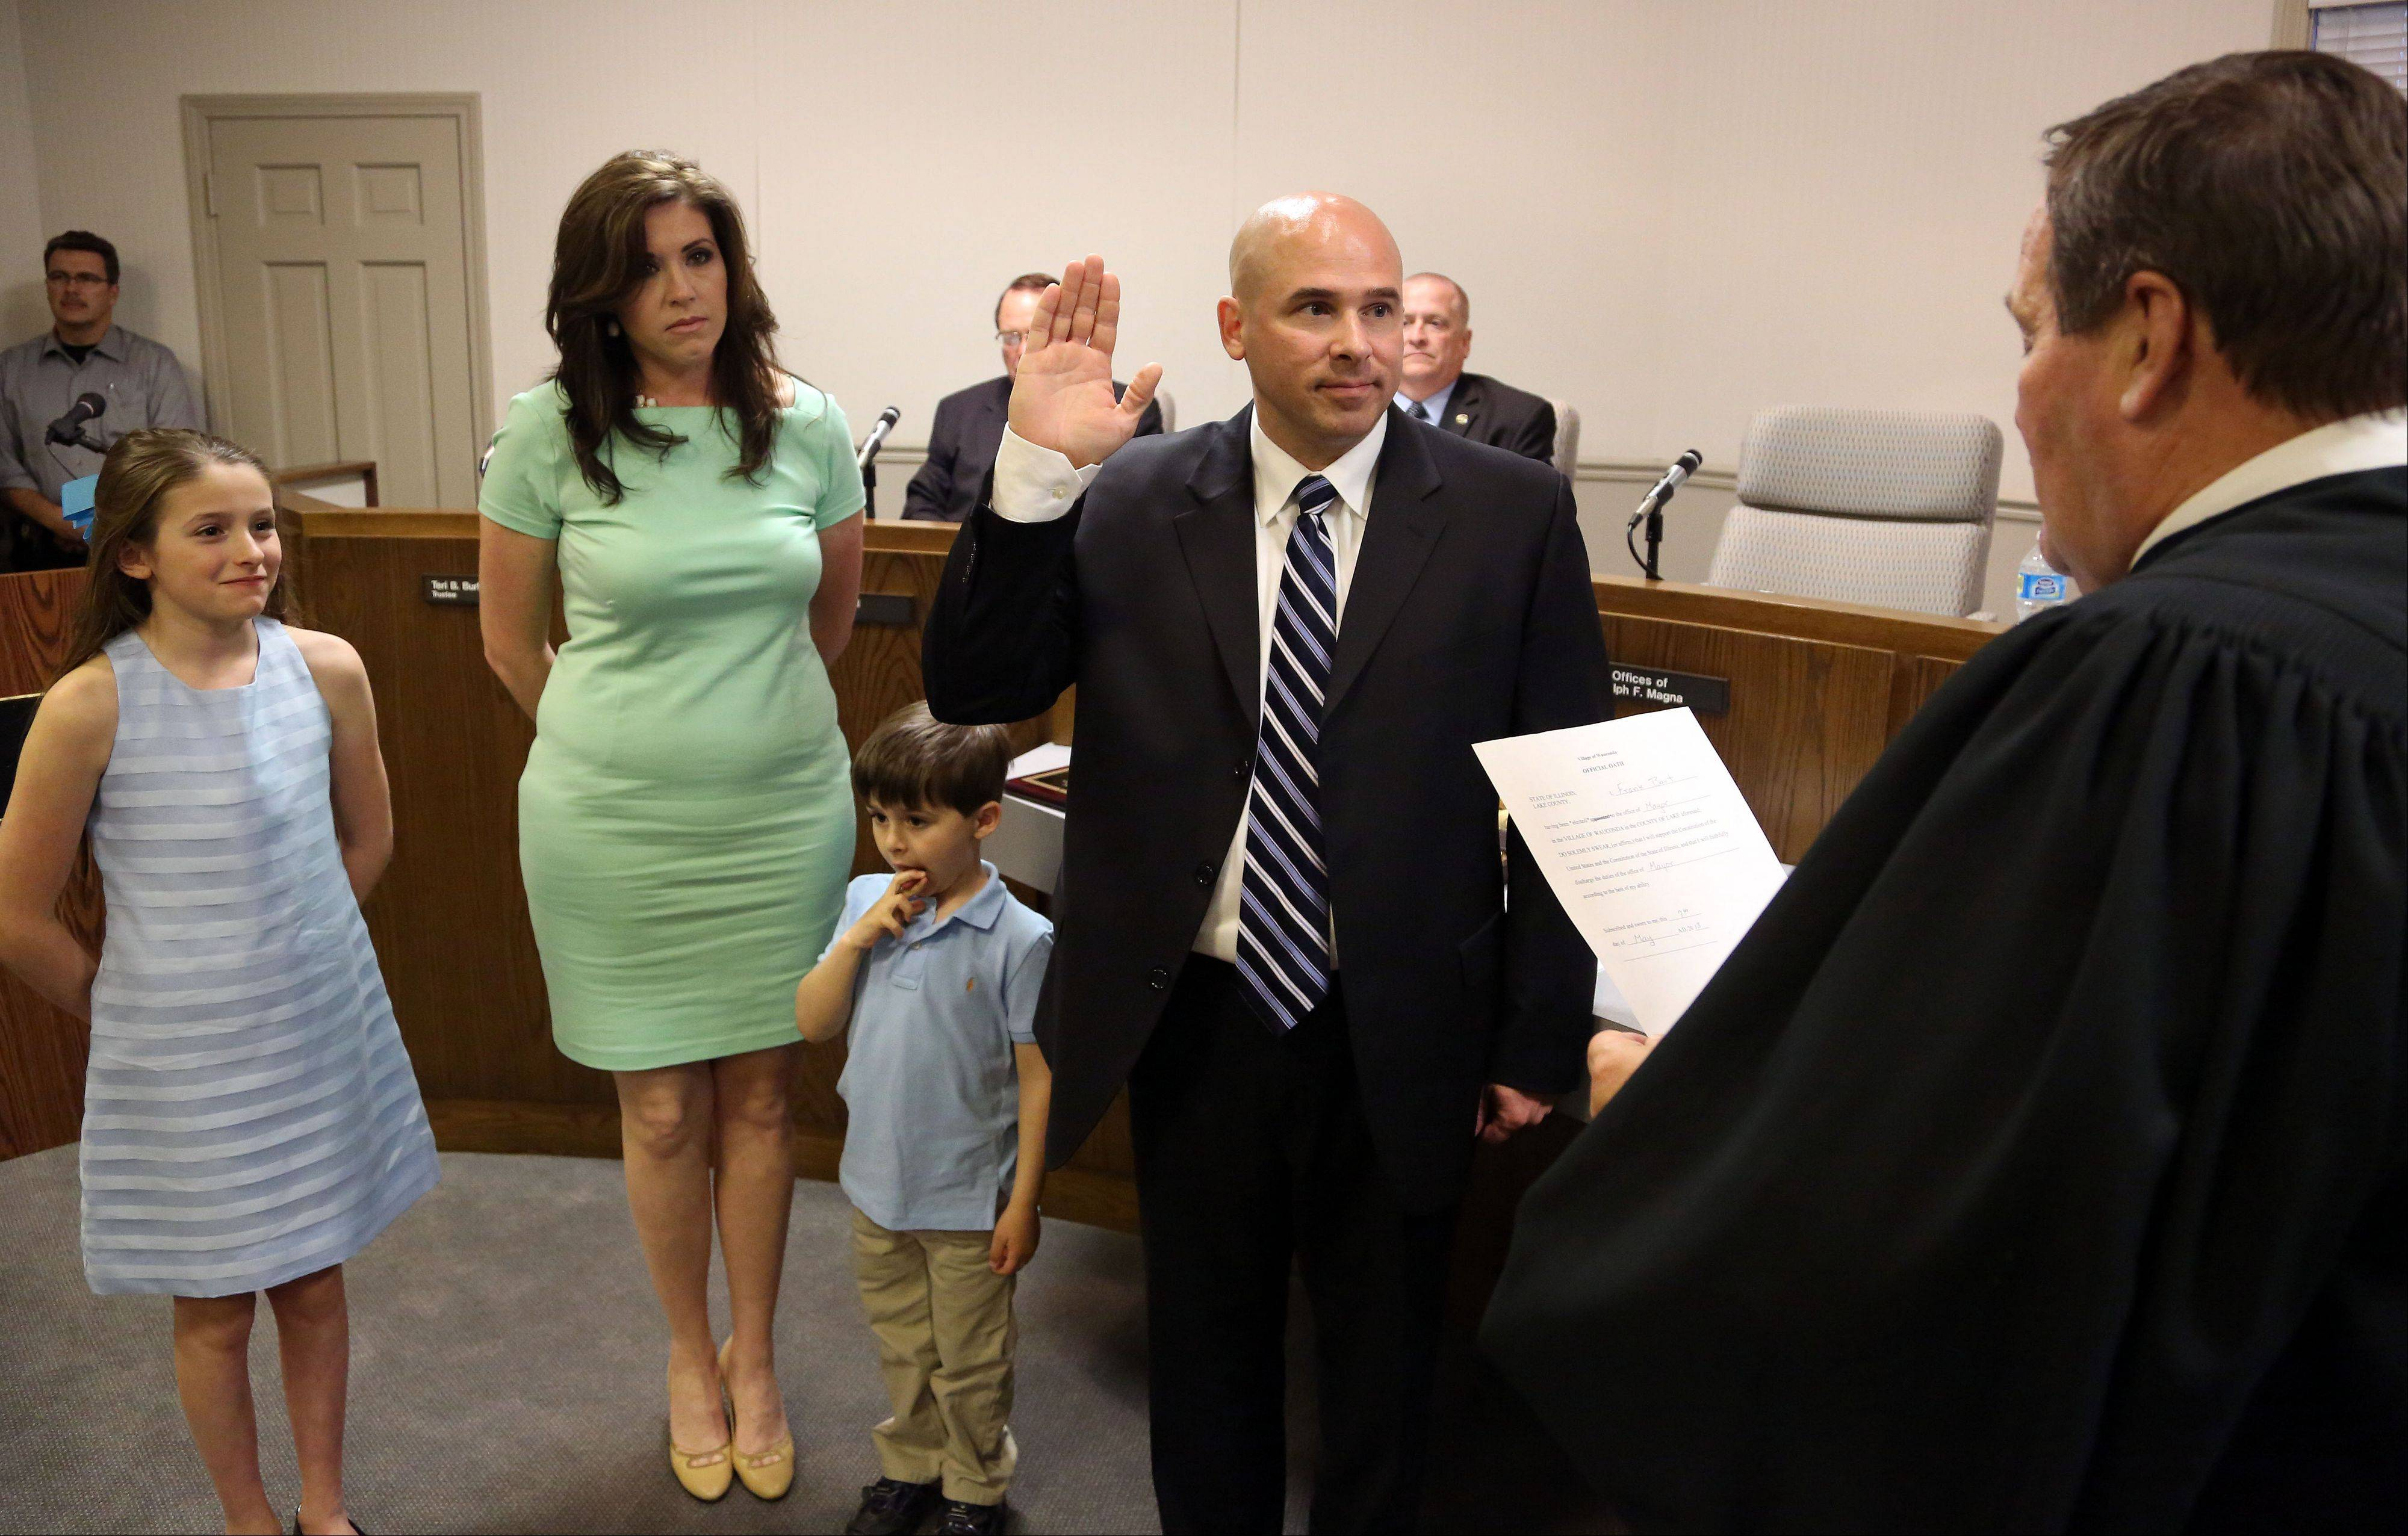 Frank Bart was sworn in last week the new mayor of Wauconda by retired Lake County Circuit Court Judge Henry Tonigan, right. Accompanying Bart were are his wife Christine and his children Anthony, 4, and Antonette, 10.